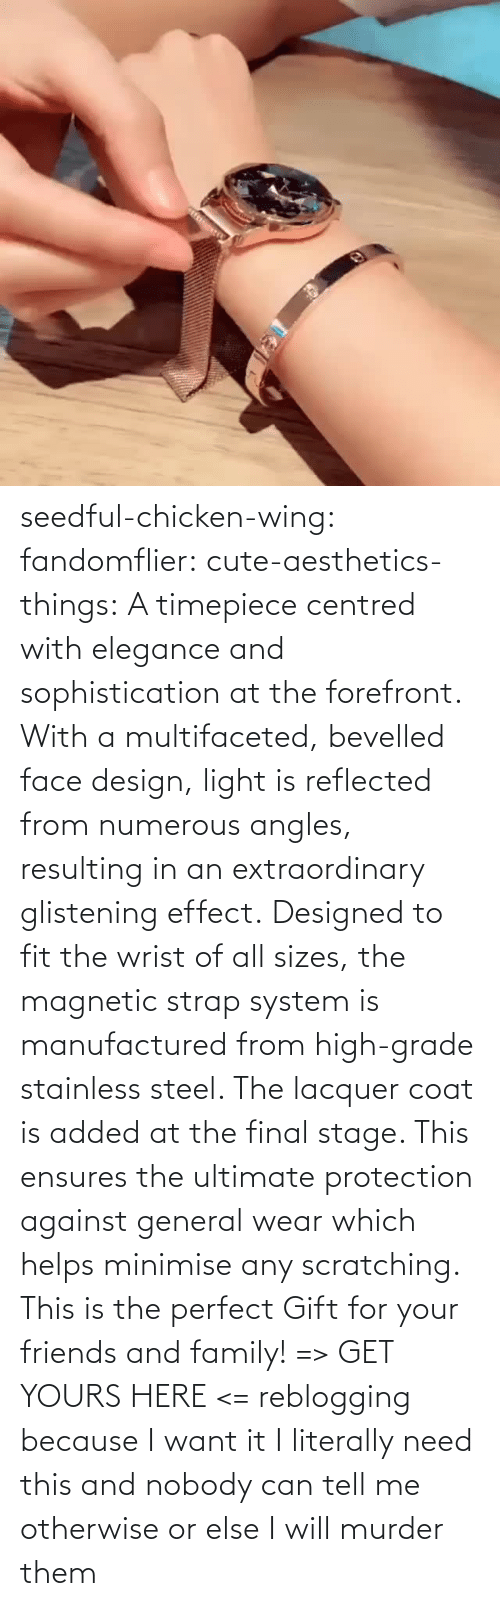 wing: seedful-chicken-wing: fandomflier:  cute-aesthetics-things:   A timepiece centred with elegance and sophistication at the forefront. With a multifaceted, bevelled face design, light is reflected from numerous angles, resulting in an extraordinary glistening effect. Designed to fit the wrist of all sizes, the magnetic strap system is manufactured from high-grade stainless steel. The lacquer coat is added at the final stage. This ensures the ultimate protection against general wear which helps minimise any scratching. This is the perfect Gift for your friends and family! => GET YOURS HERE <=   reblogging because I want it  I literally need this and nobody can tell me otherwise or else I will murder them